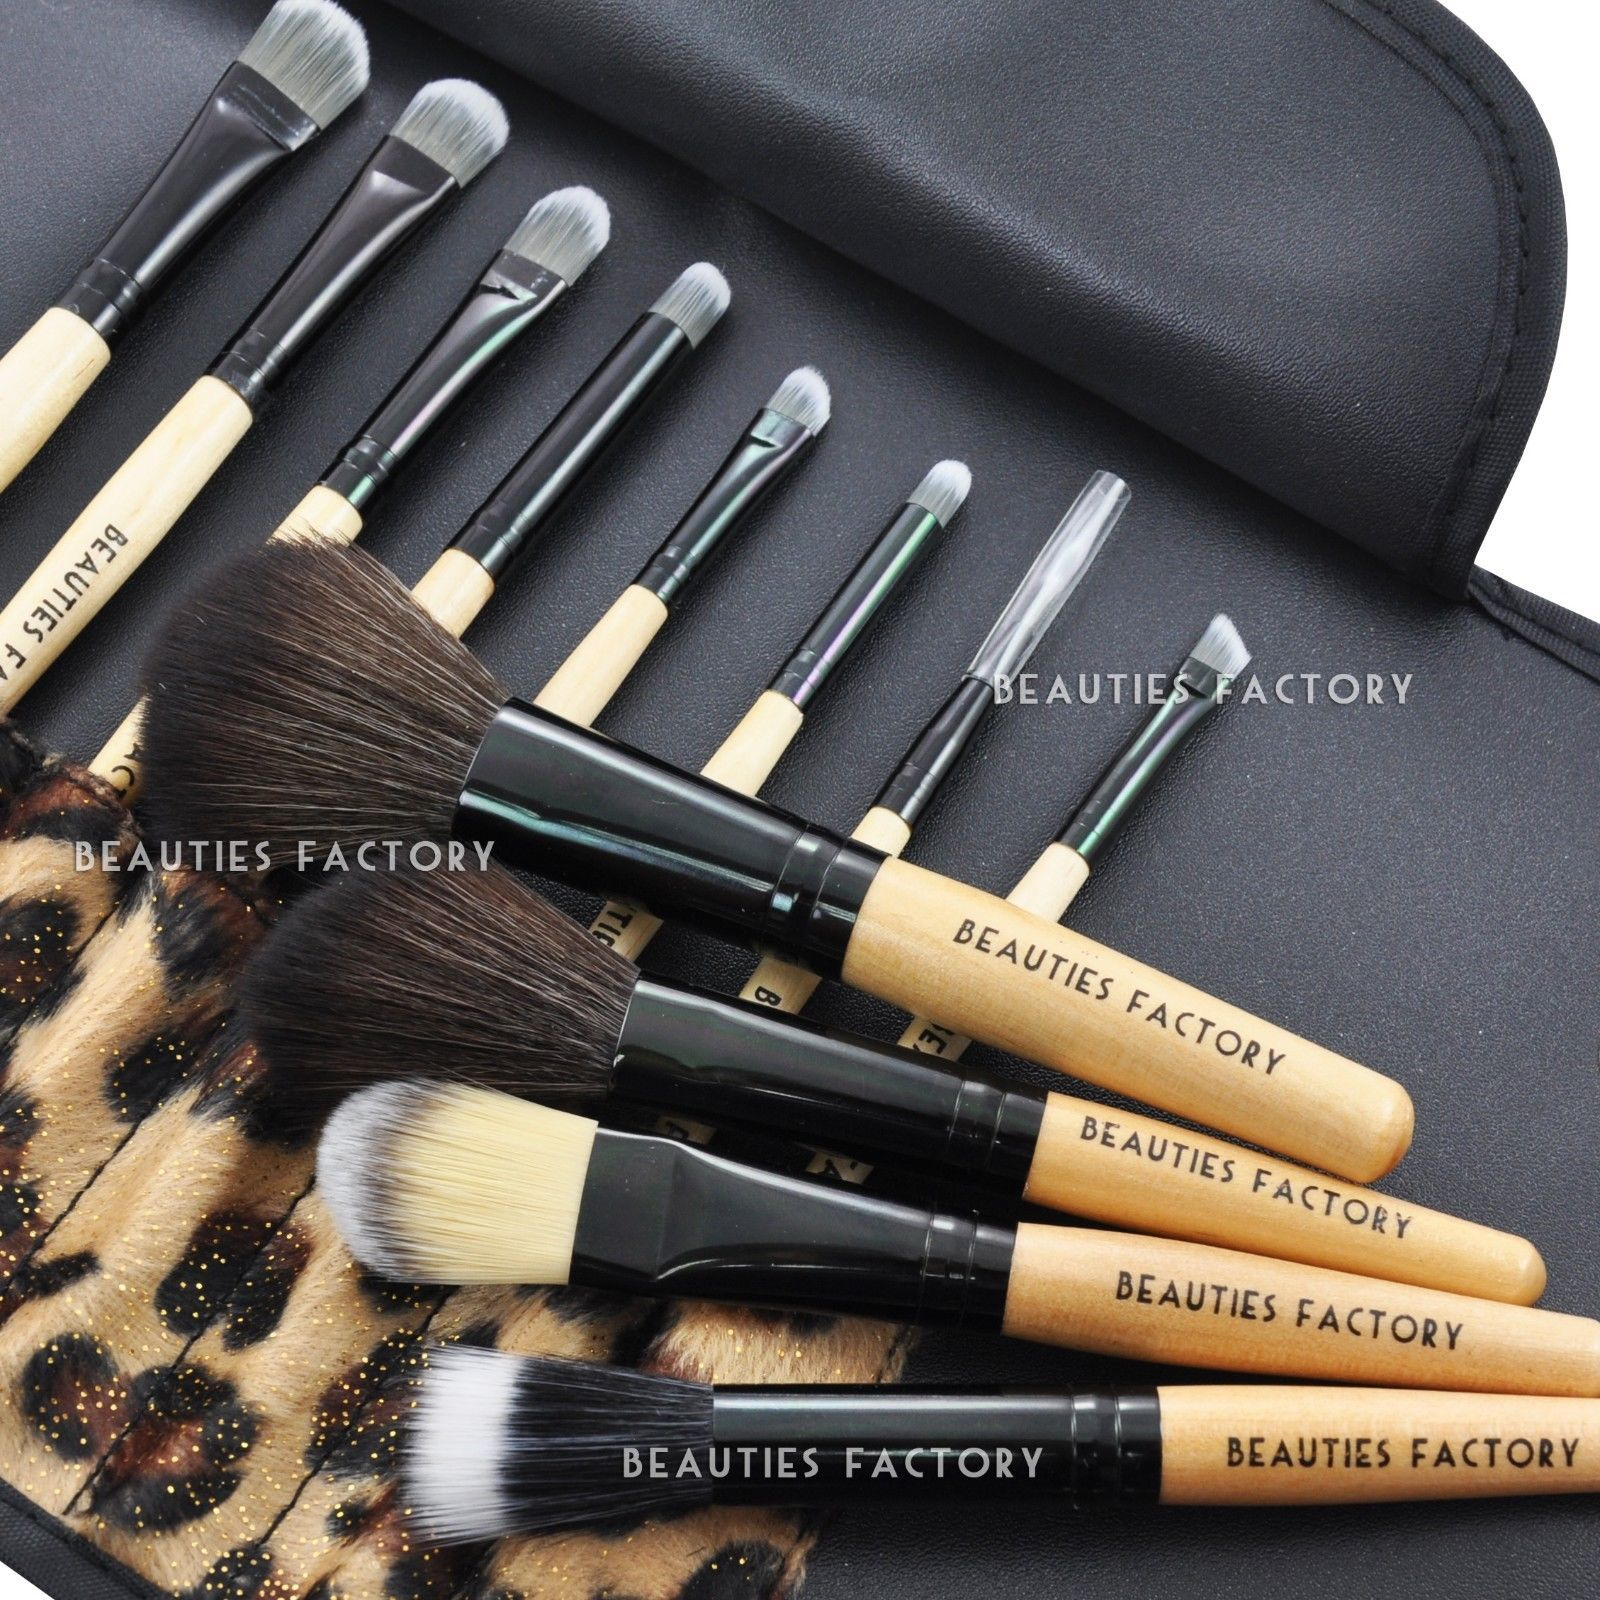 Beauties Factory 12Pcs African Leopard Makeup Brushes Set